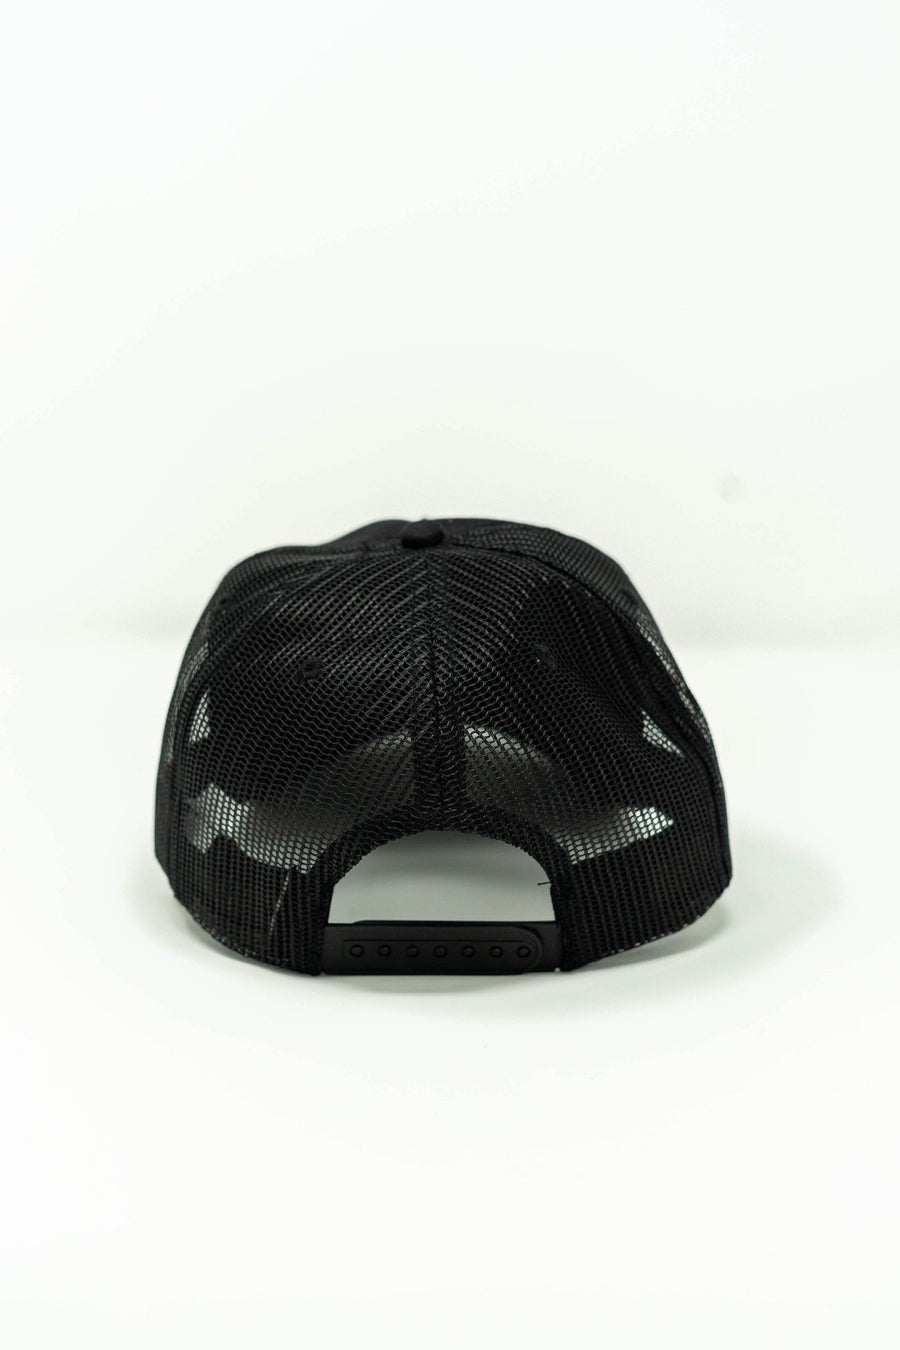 Moniker Brand Trucker Hat in Black